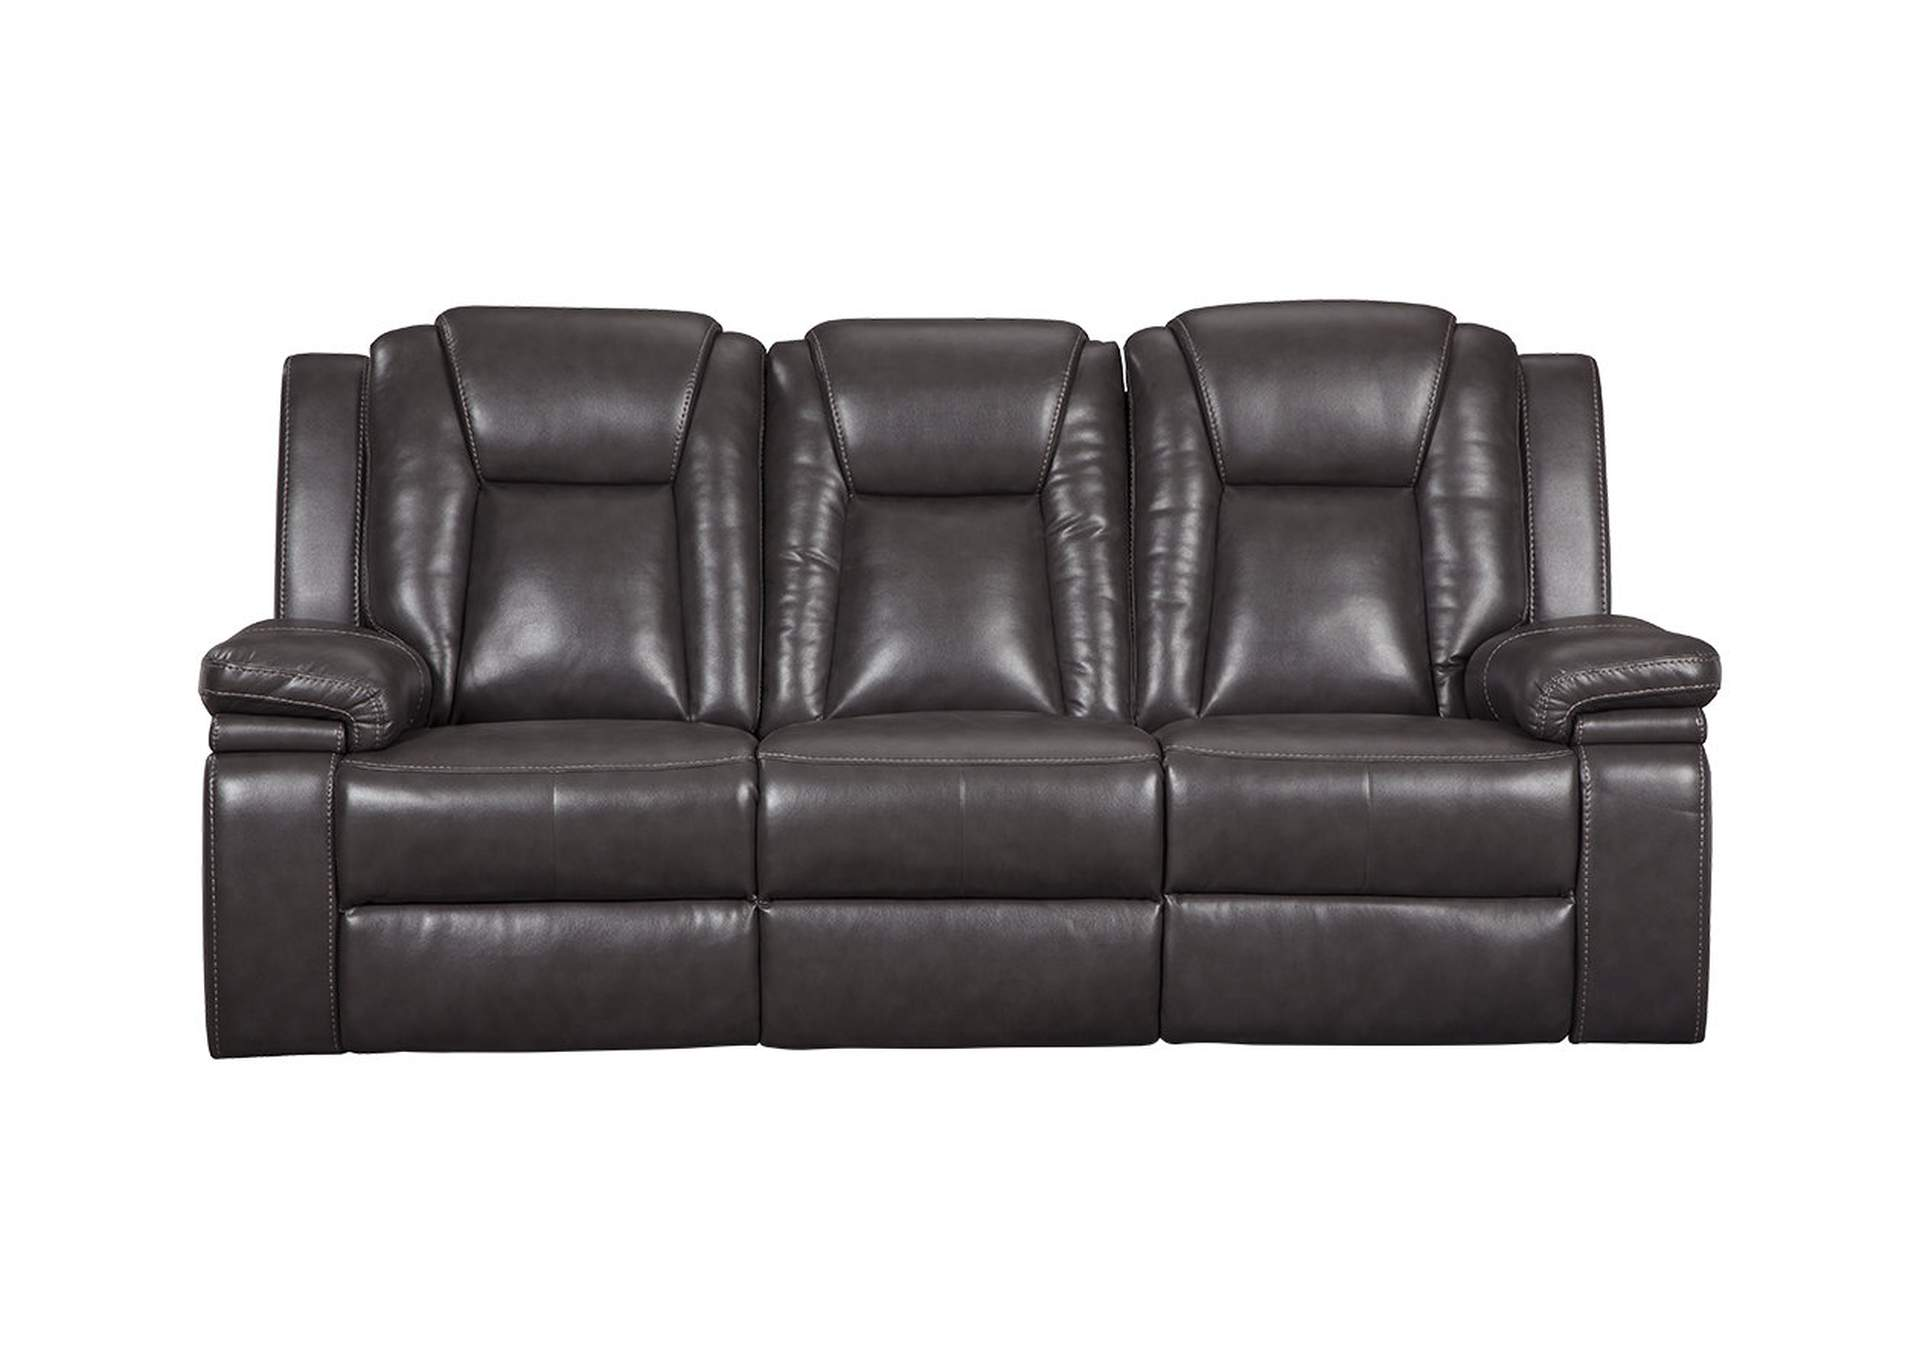 Picture of: Garristown Power Reclining Sofa Ashley Furniture Homestore Independently Owned And Operated By Best Furn Appliances I